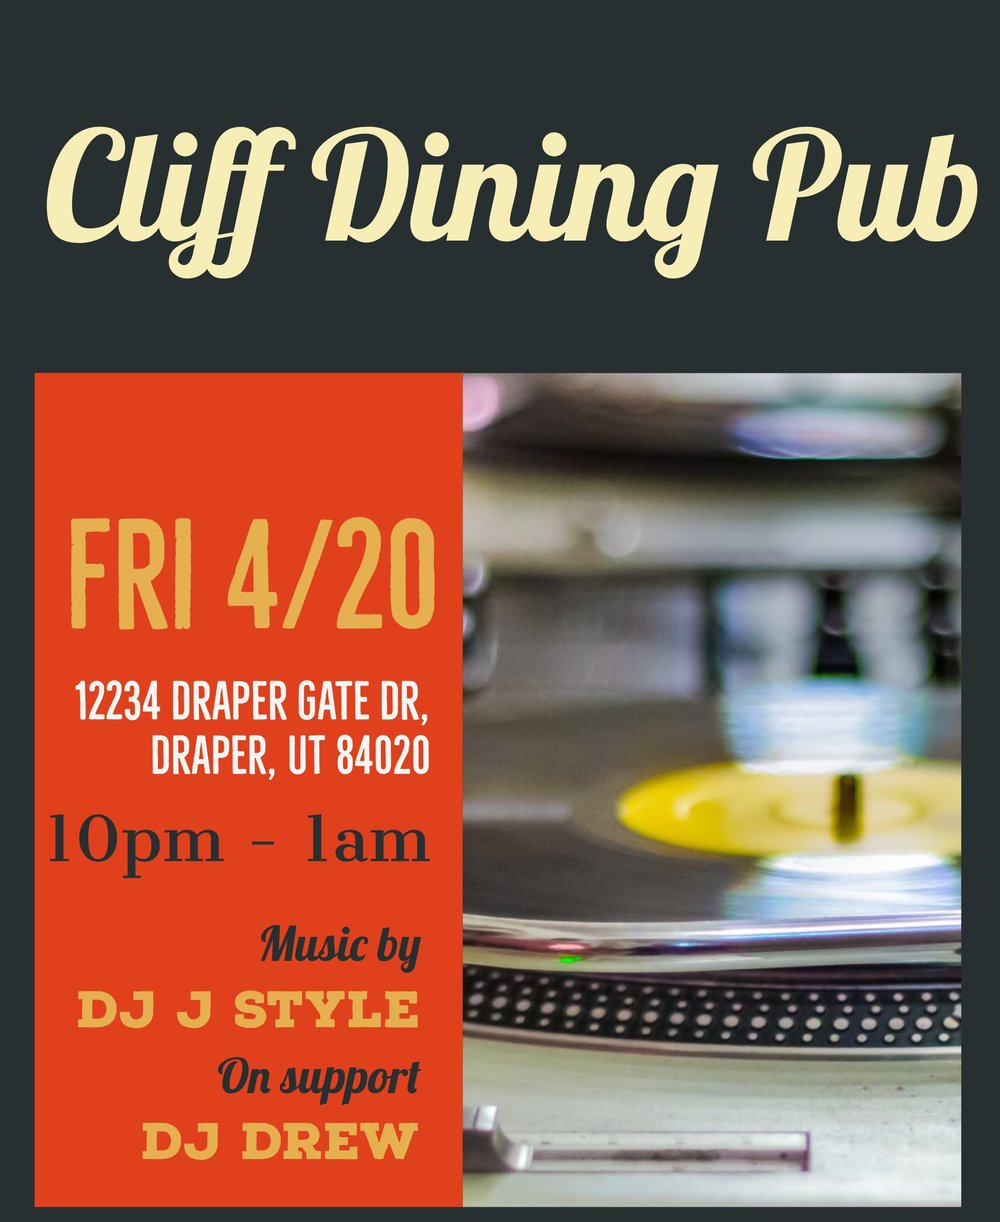 Cliff Dining Pub